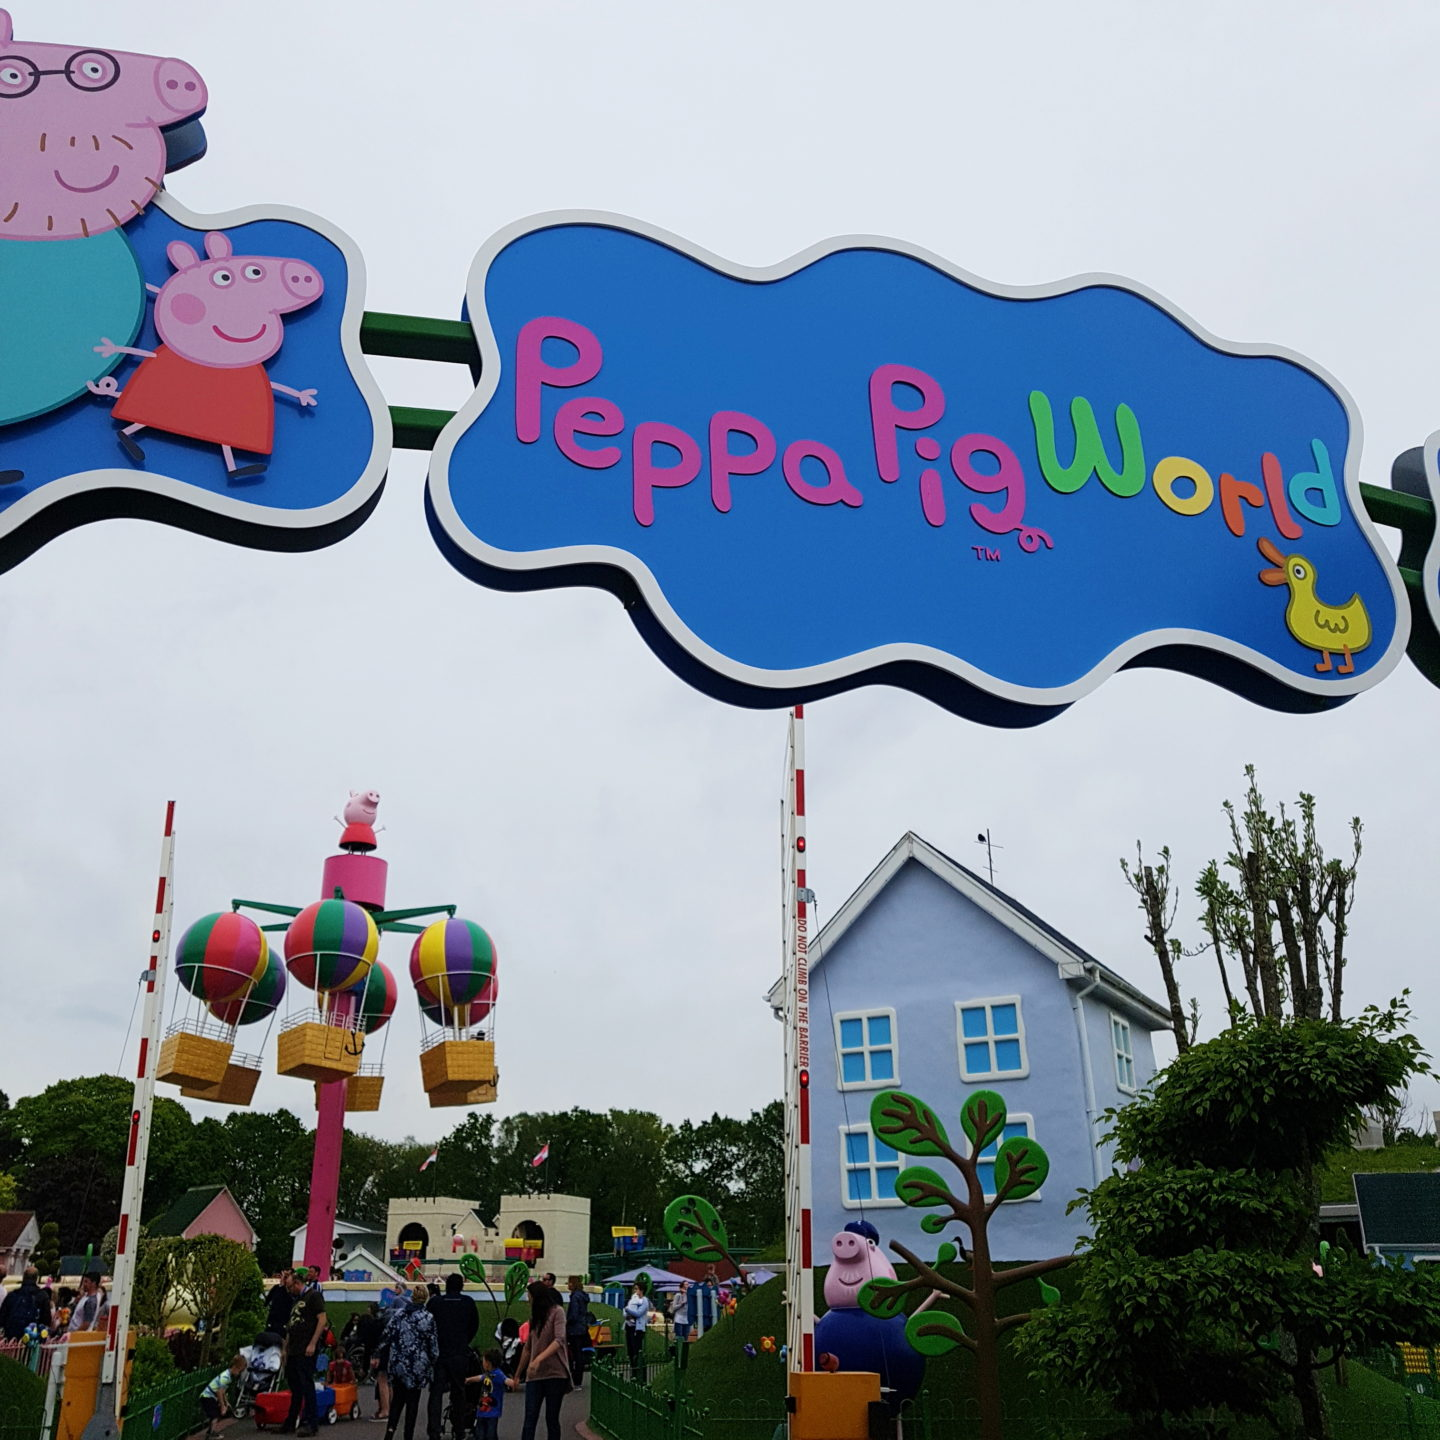 Peppa Pig World – Grand Preview Event